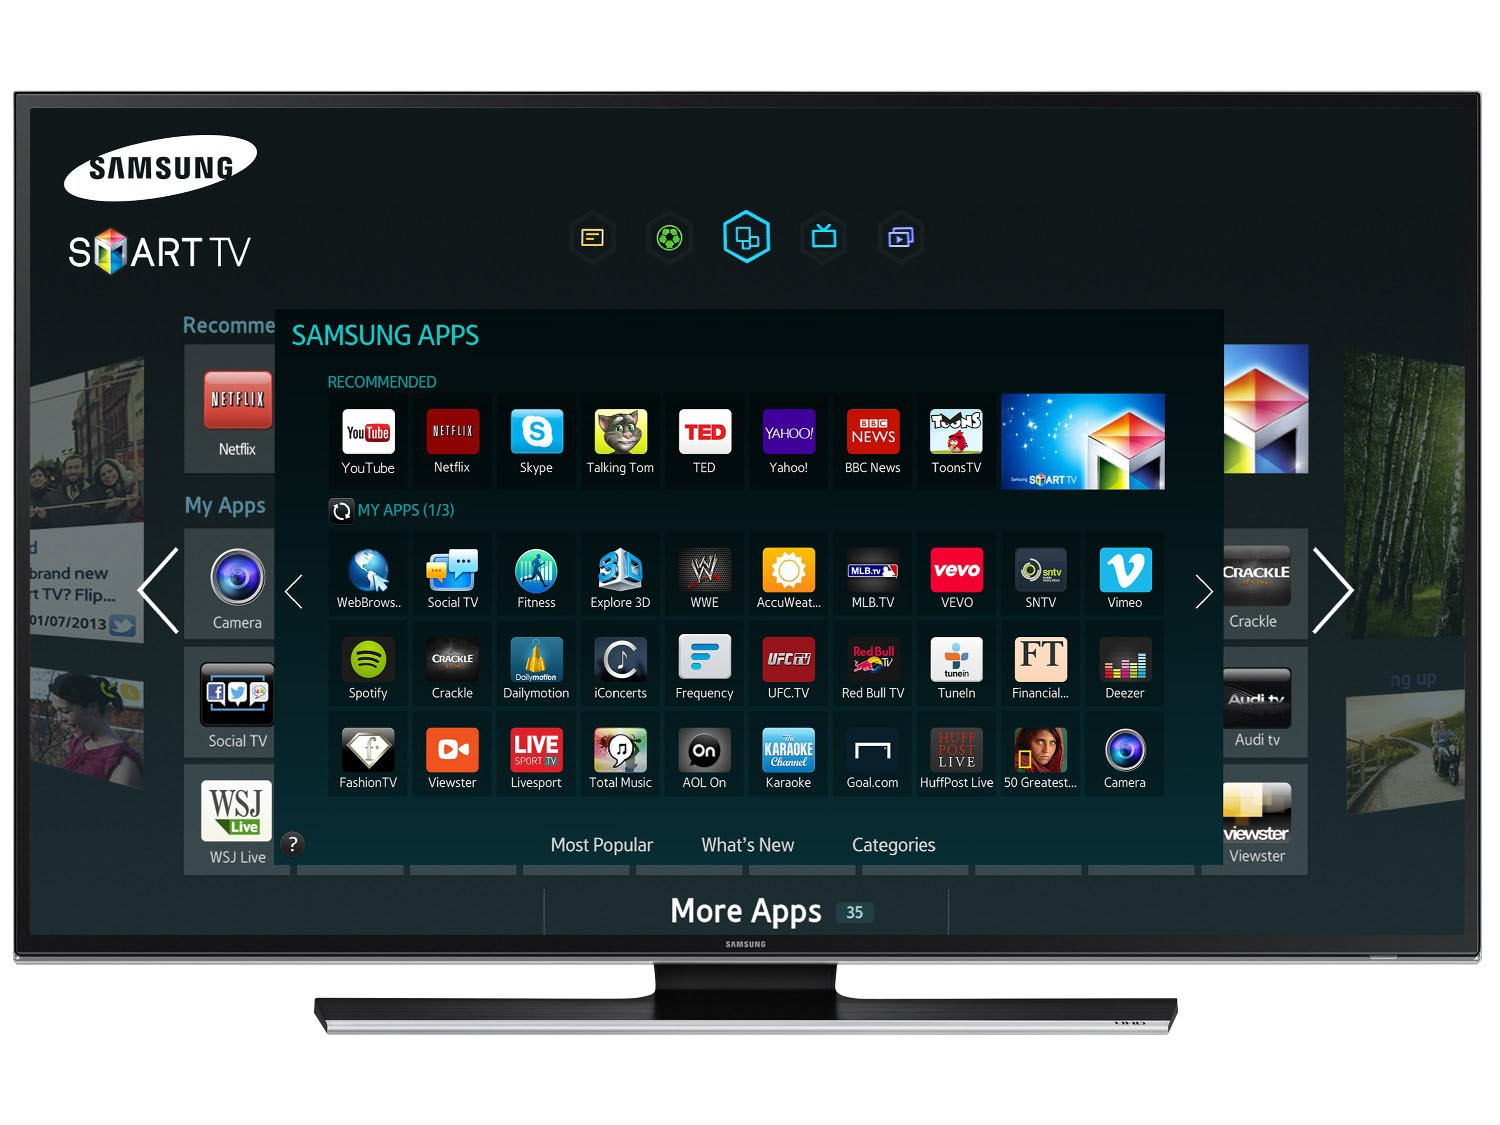 Samsung Smart tv 7000 Samsung's Smart tv App Store